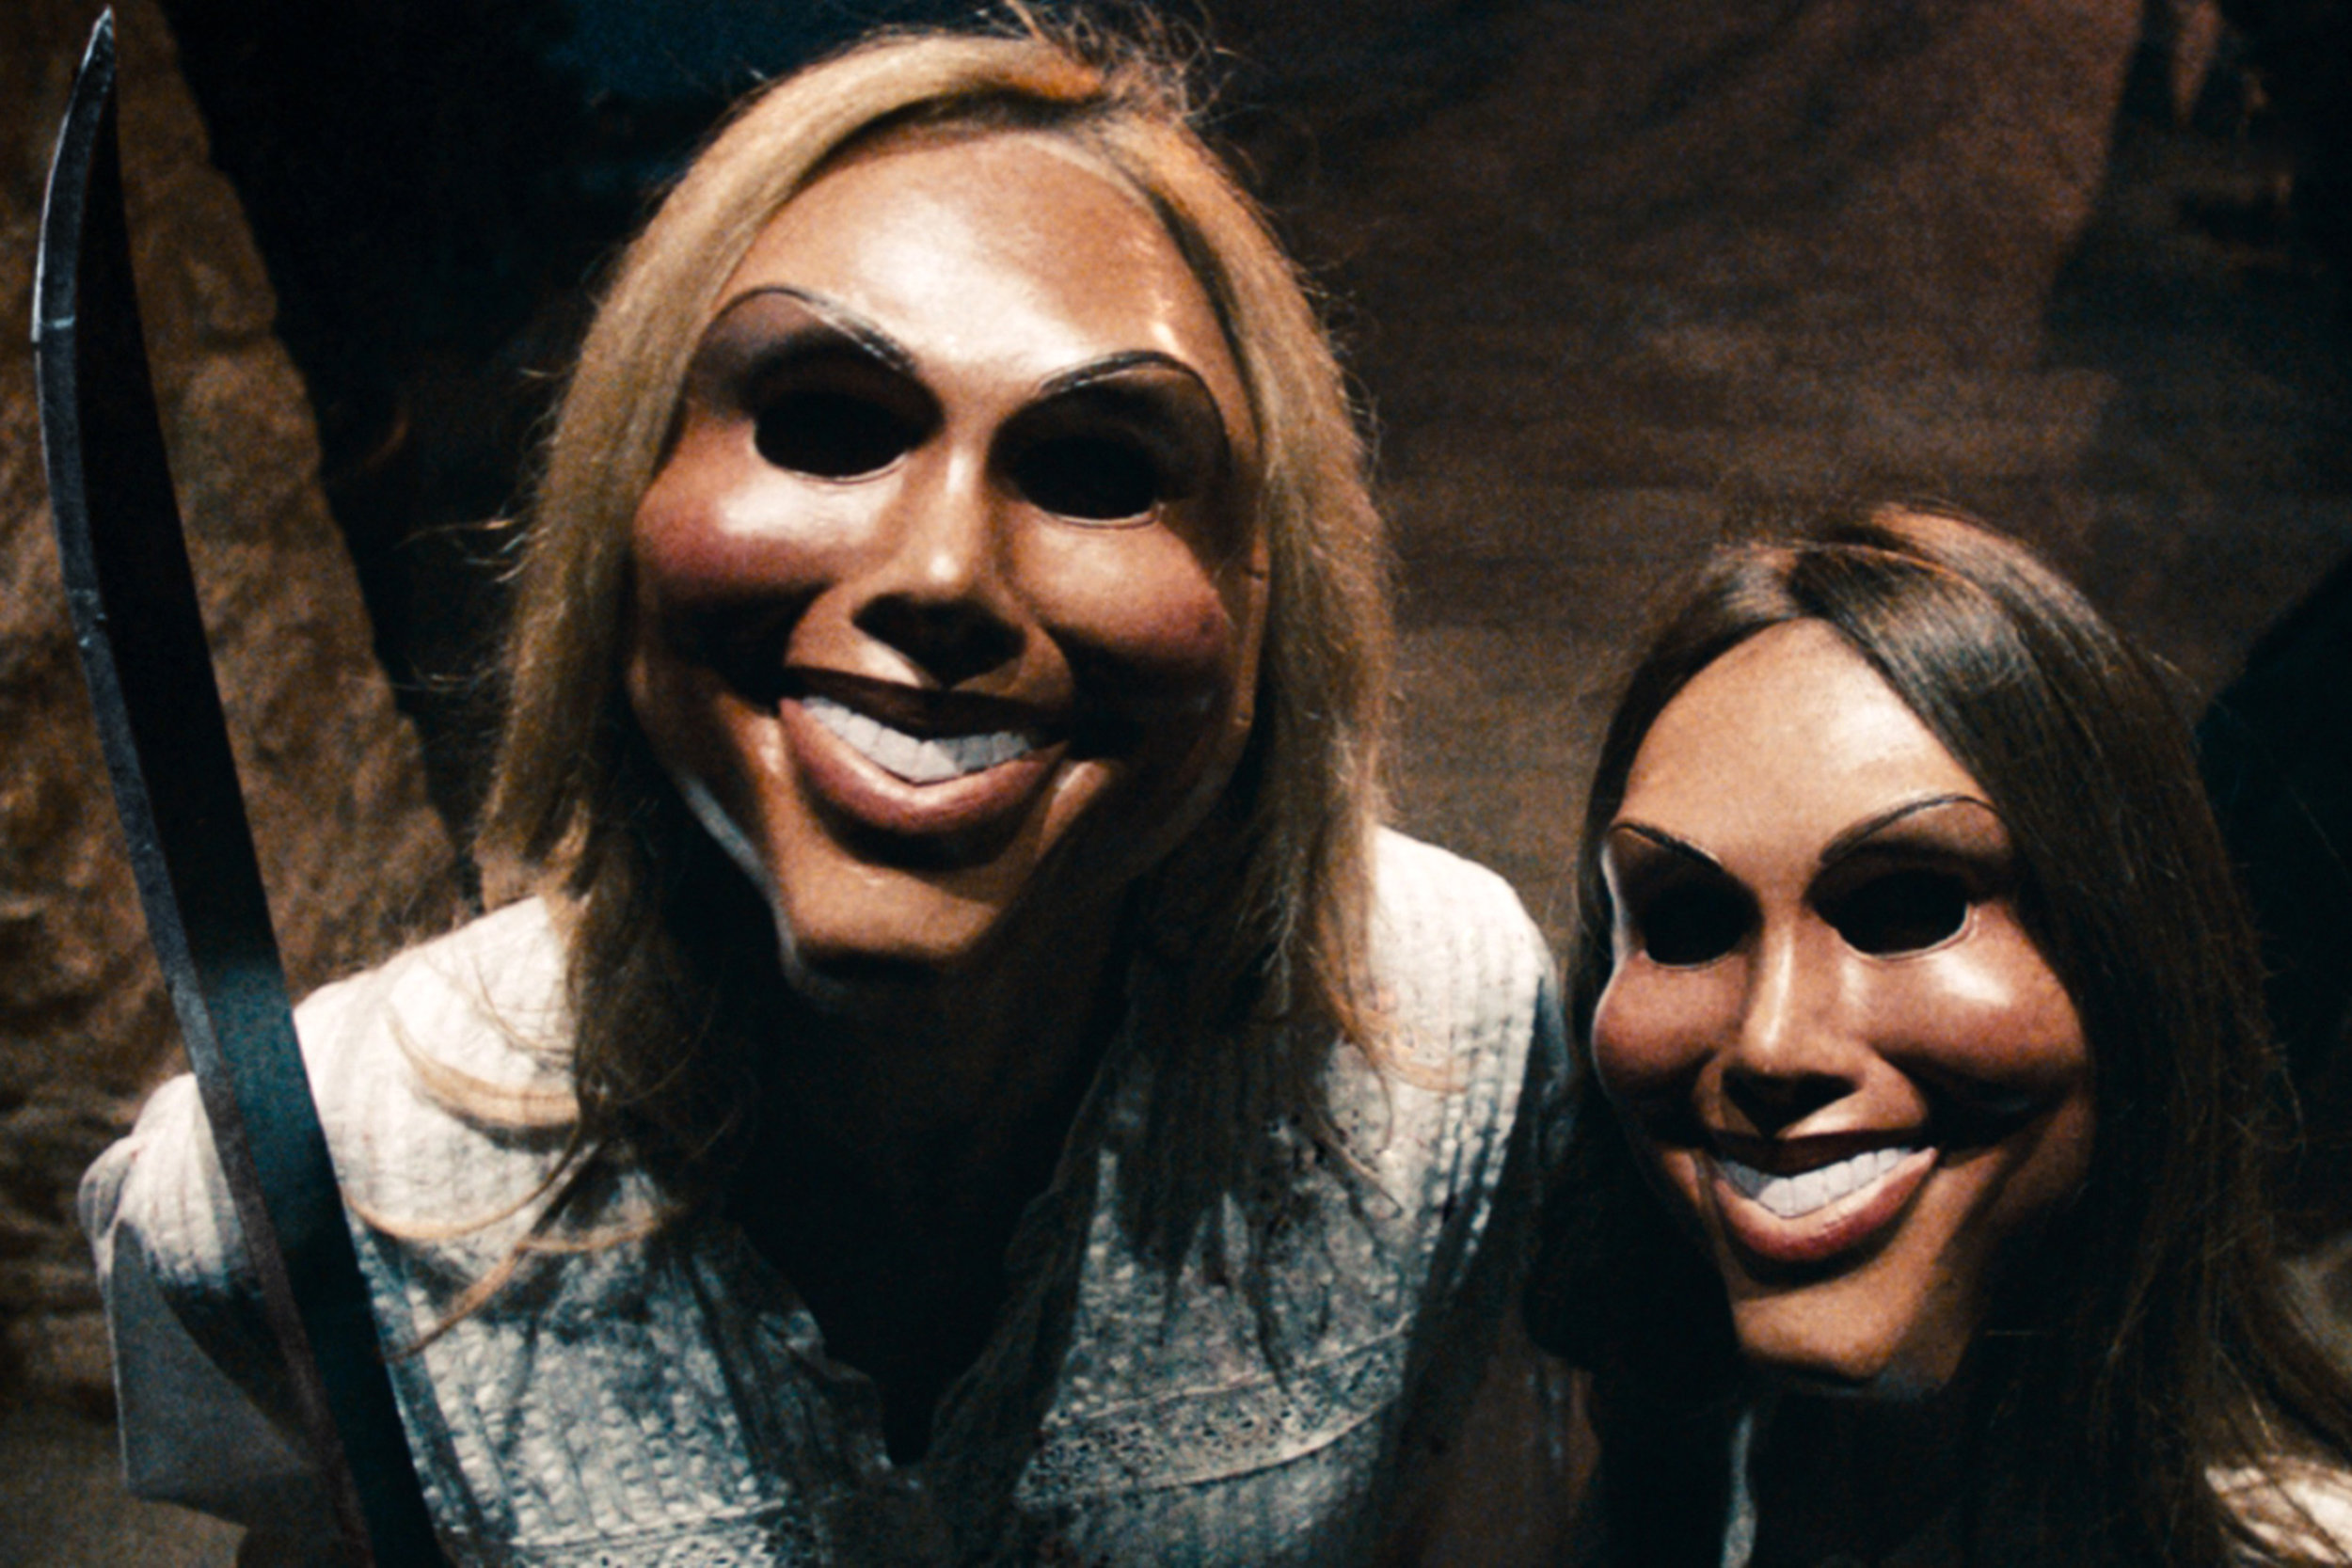 The Purge, directed by James DeMonaco. Image courtesy of Universal Pictures.